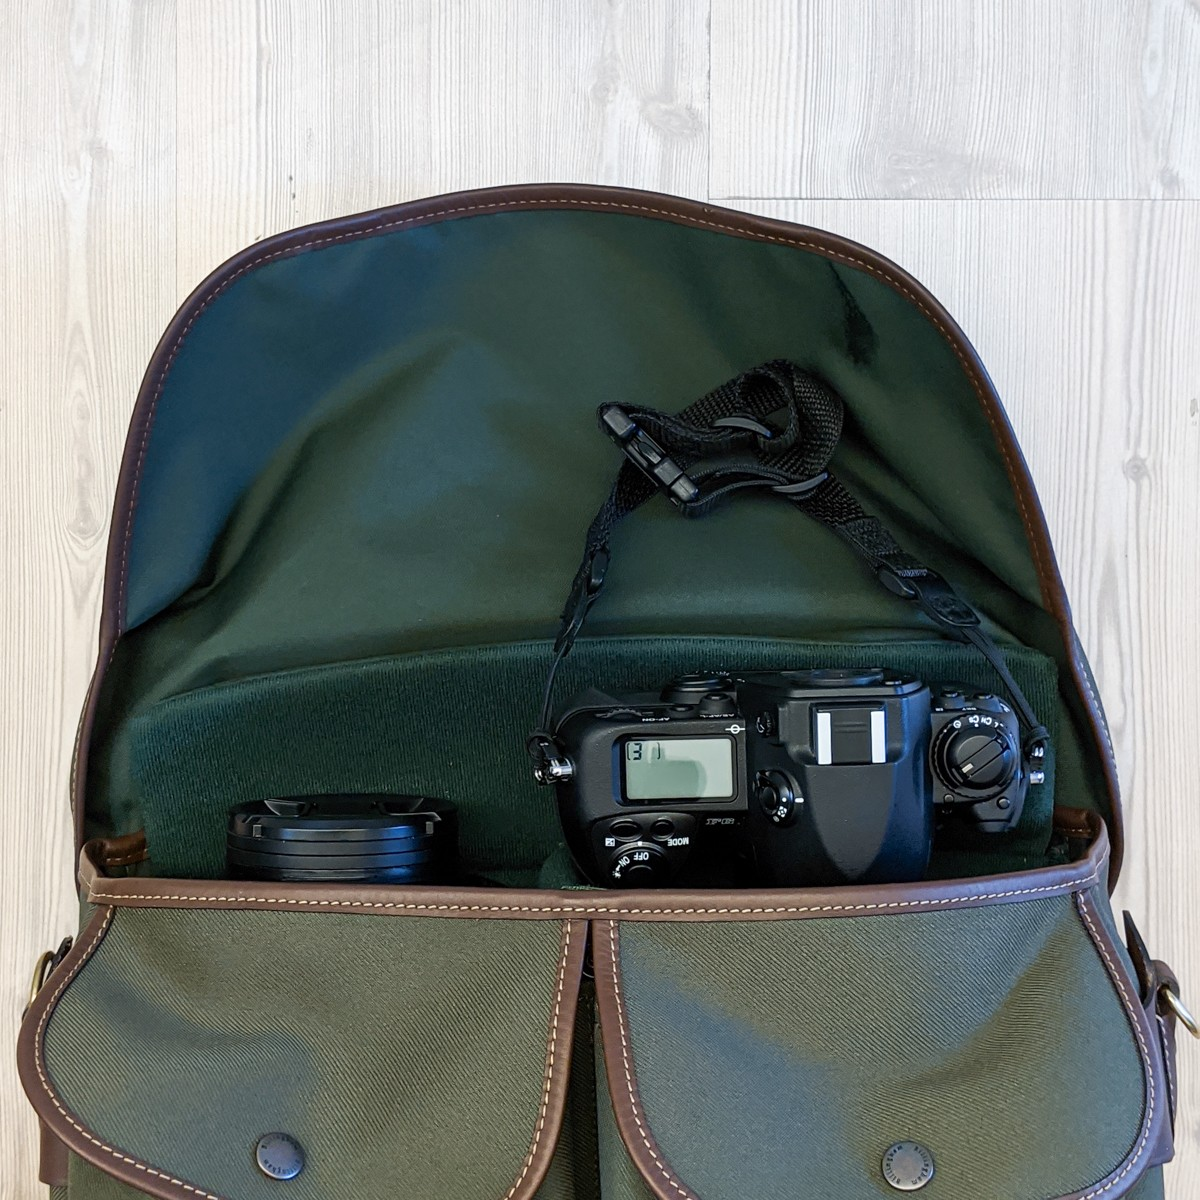 Billingham Hadley Pro 2020 - These don't fit (close-up)